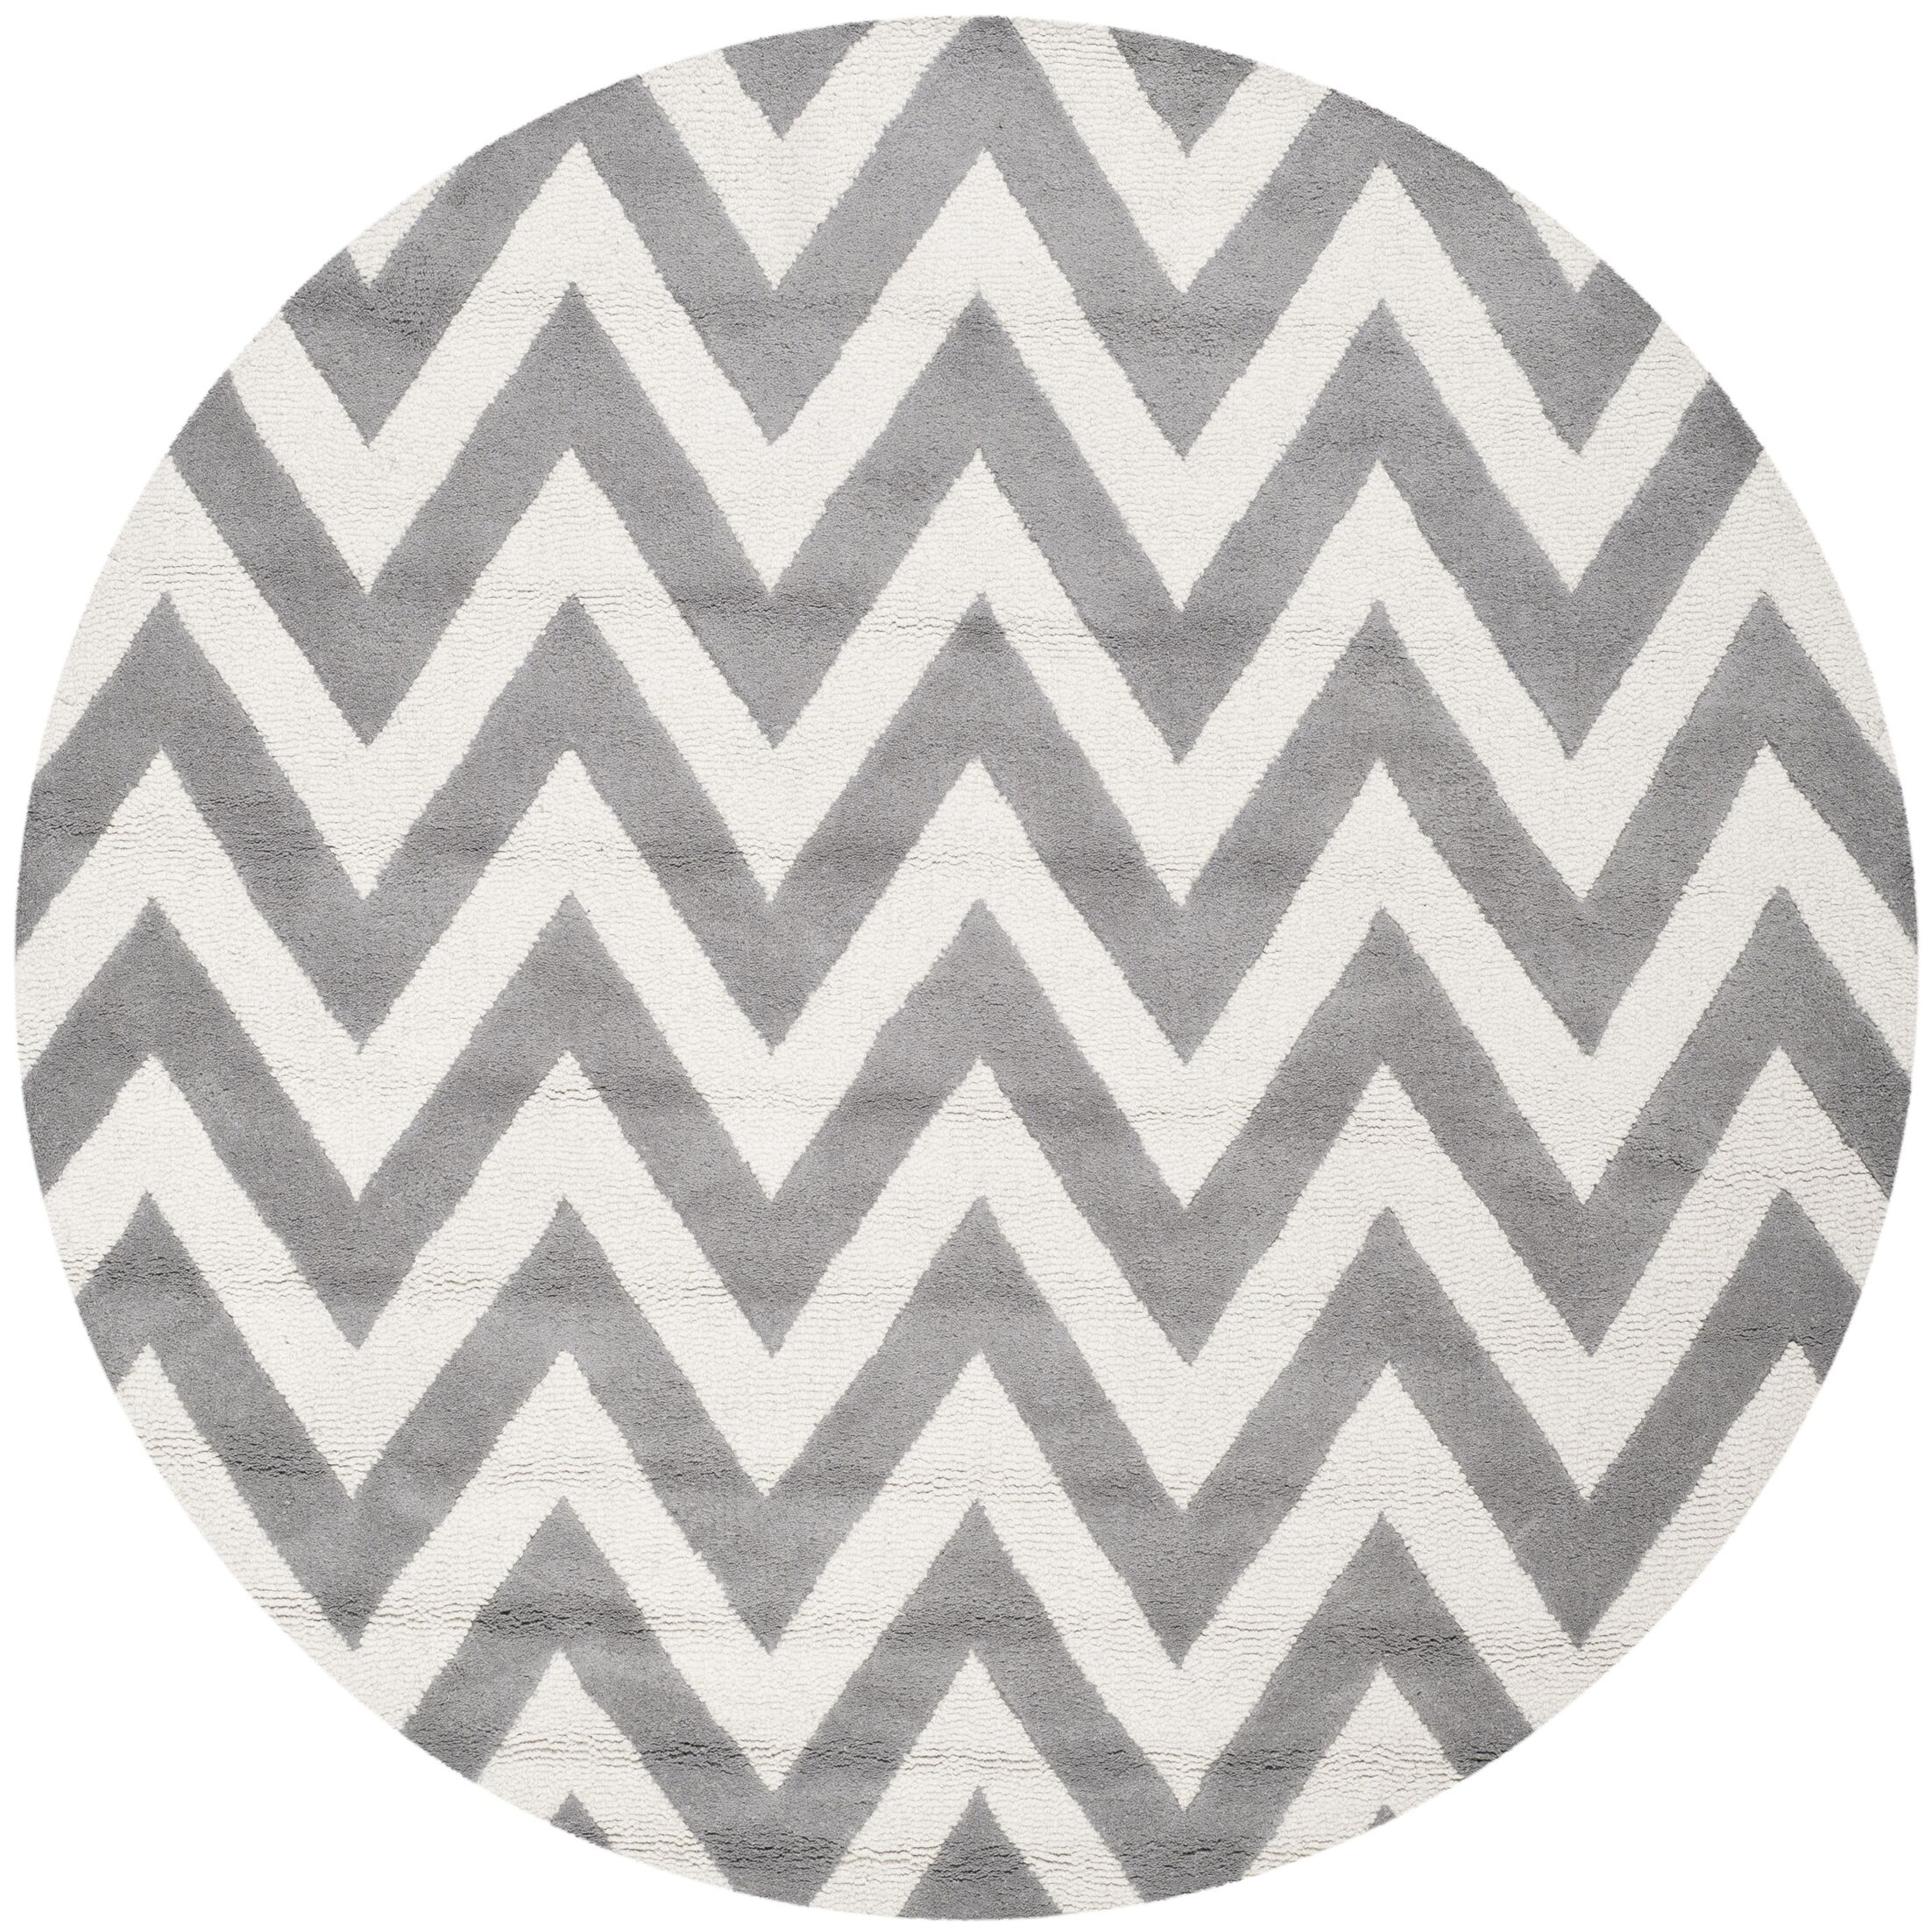 Daveney Hand-Tufted Wool Silver/Ivory Area Rug Rug Size: Round 4'